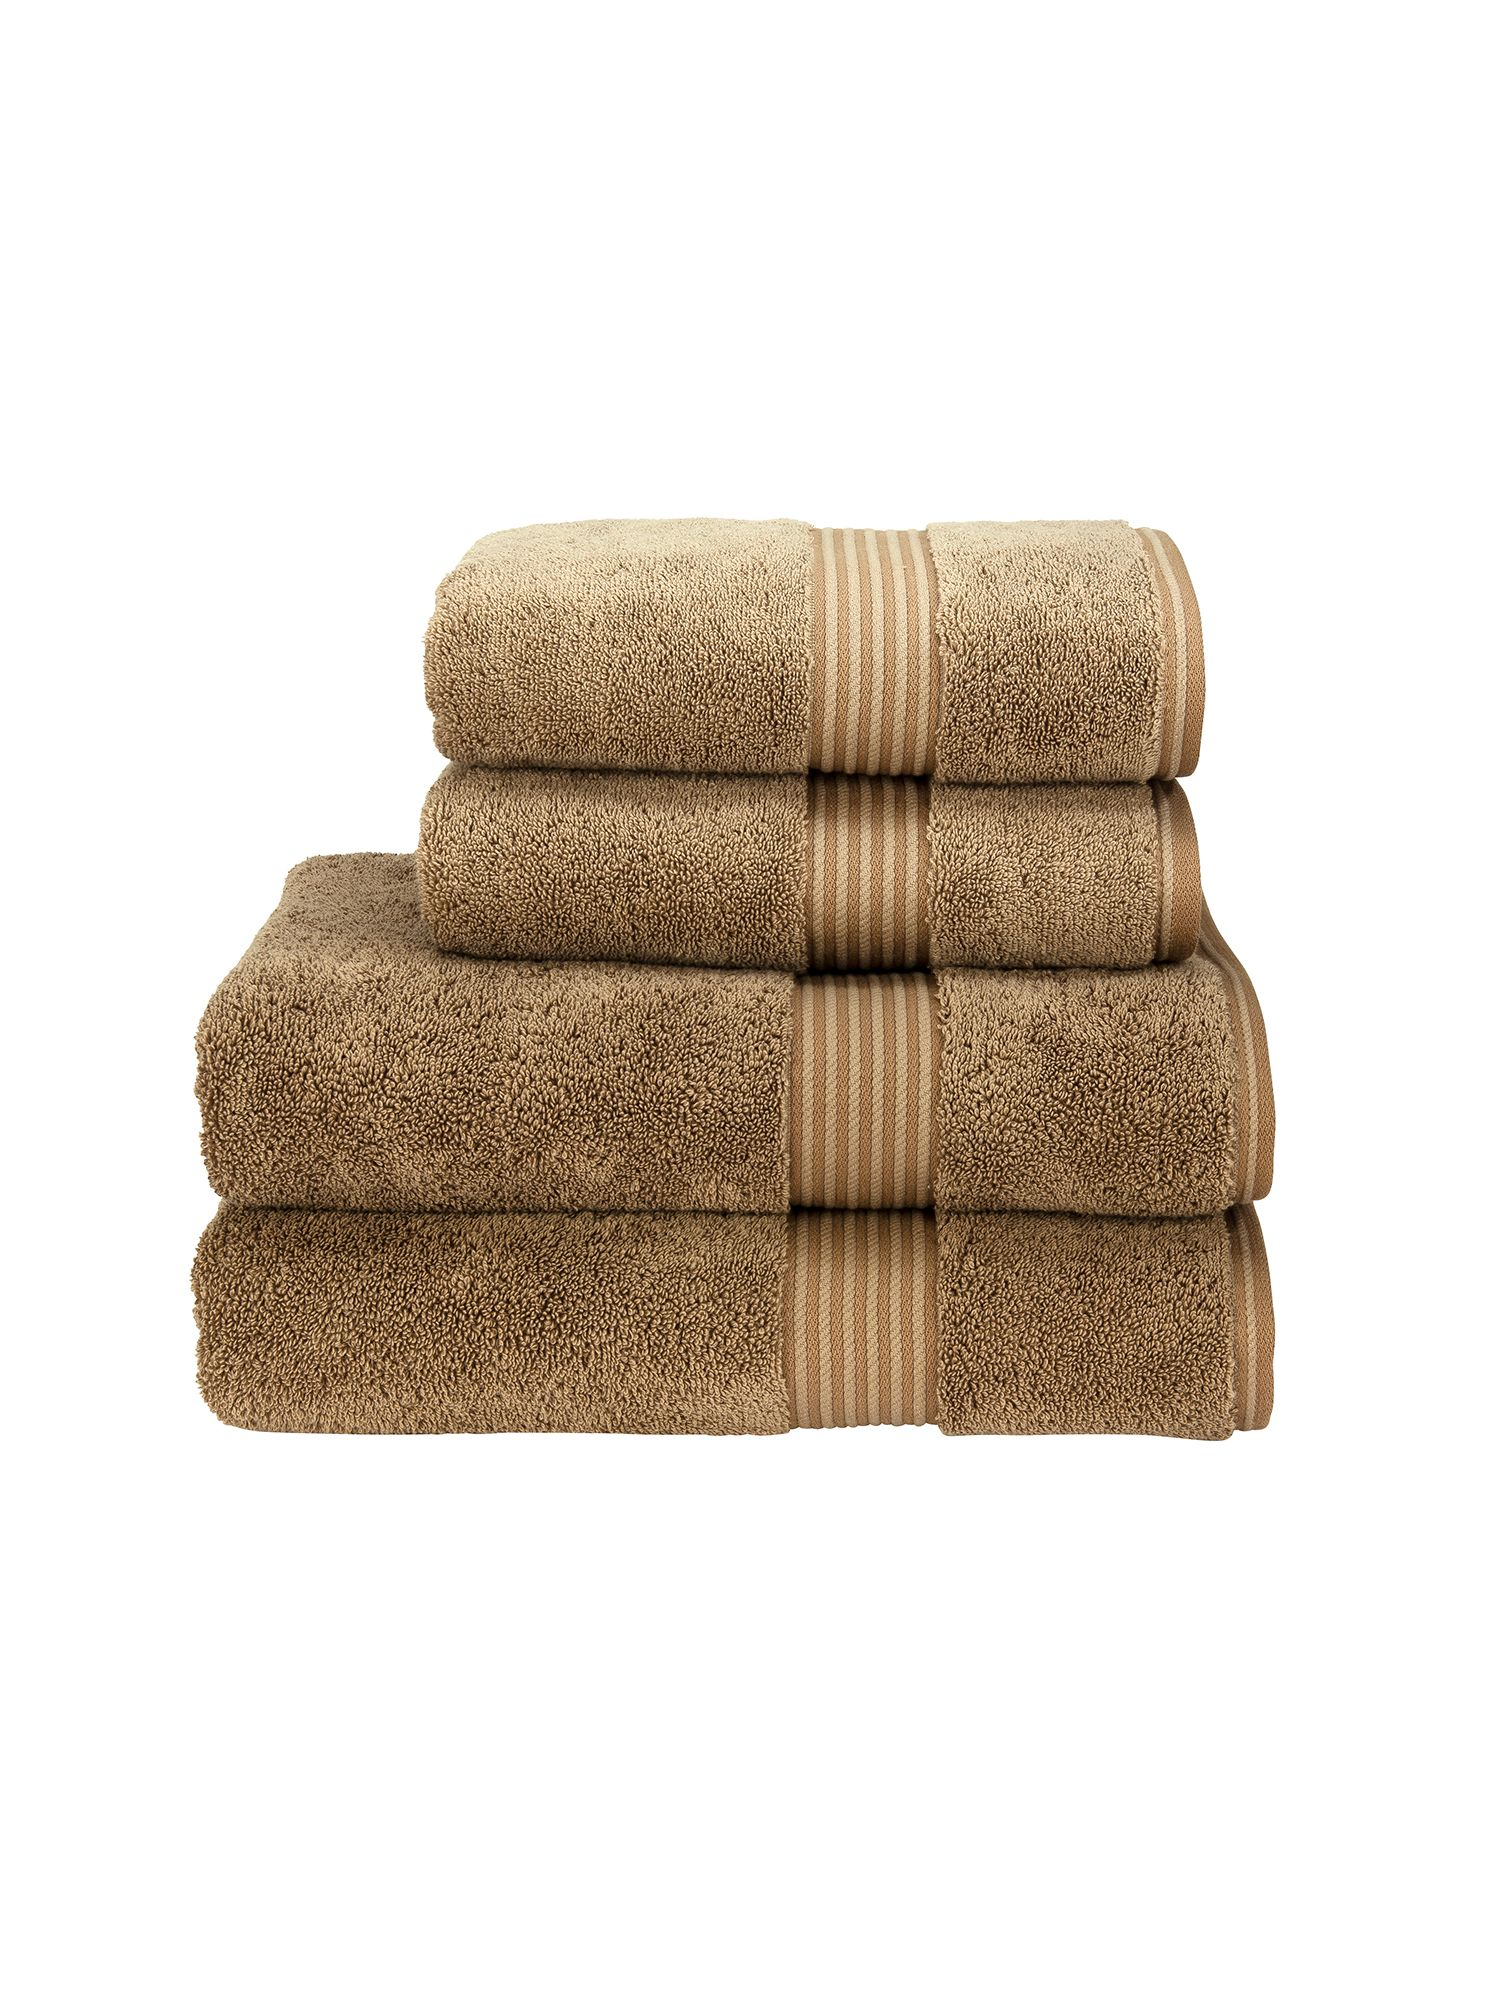 Supreme hygro towels mocha